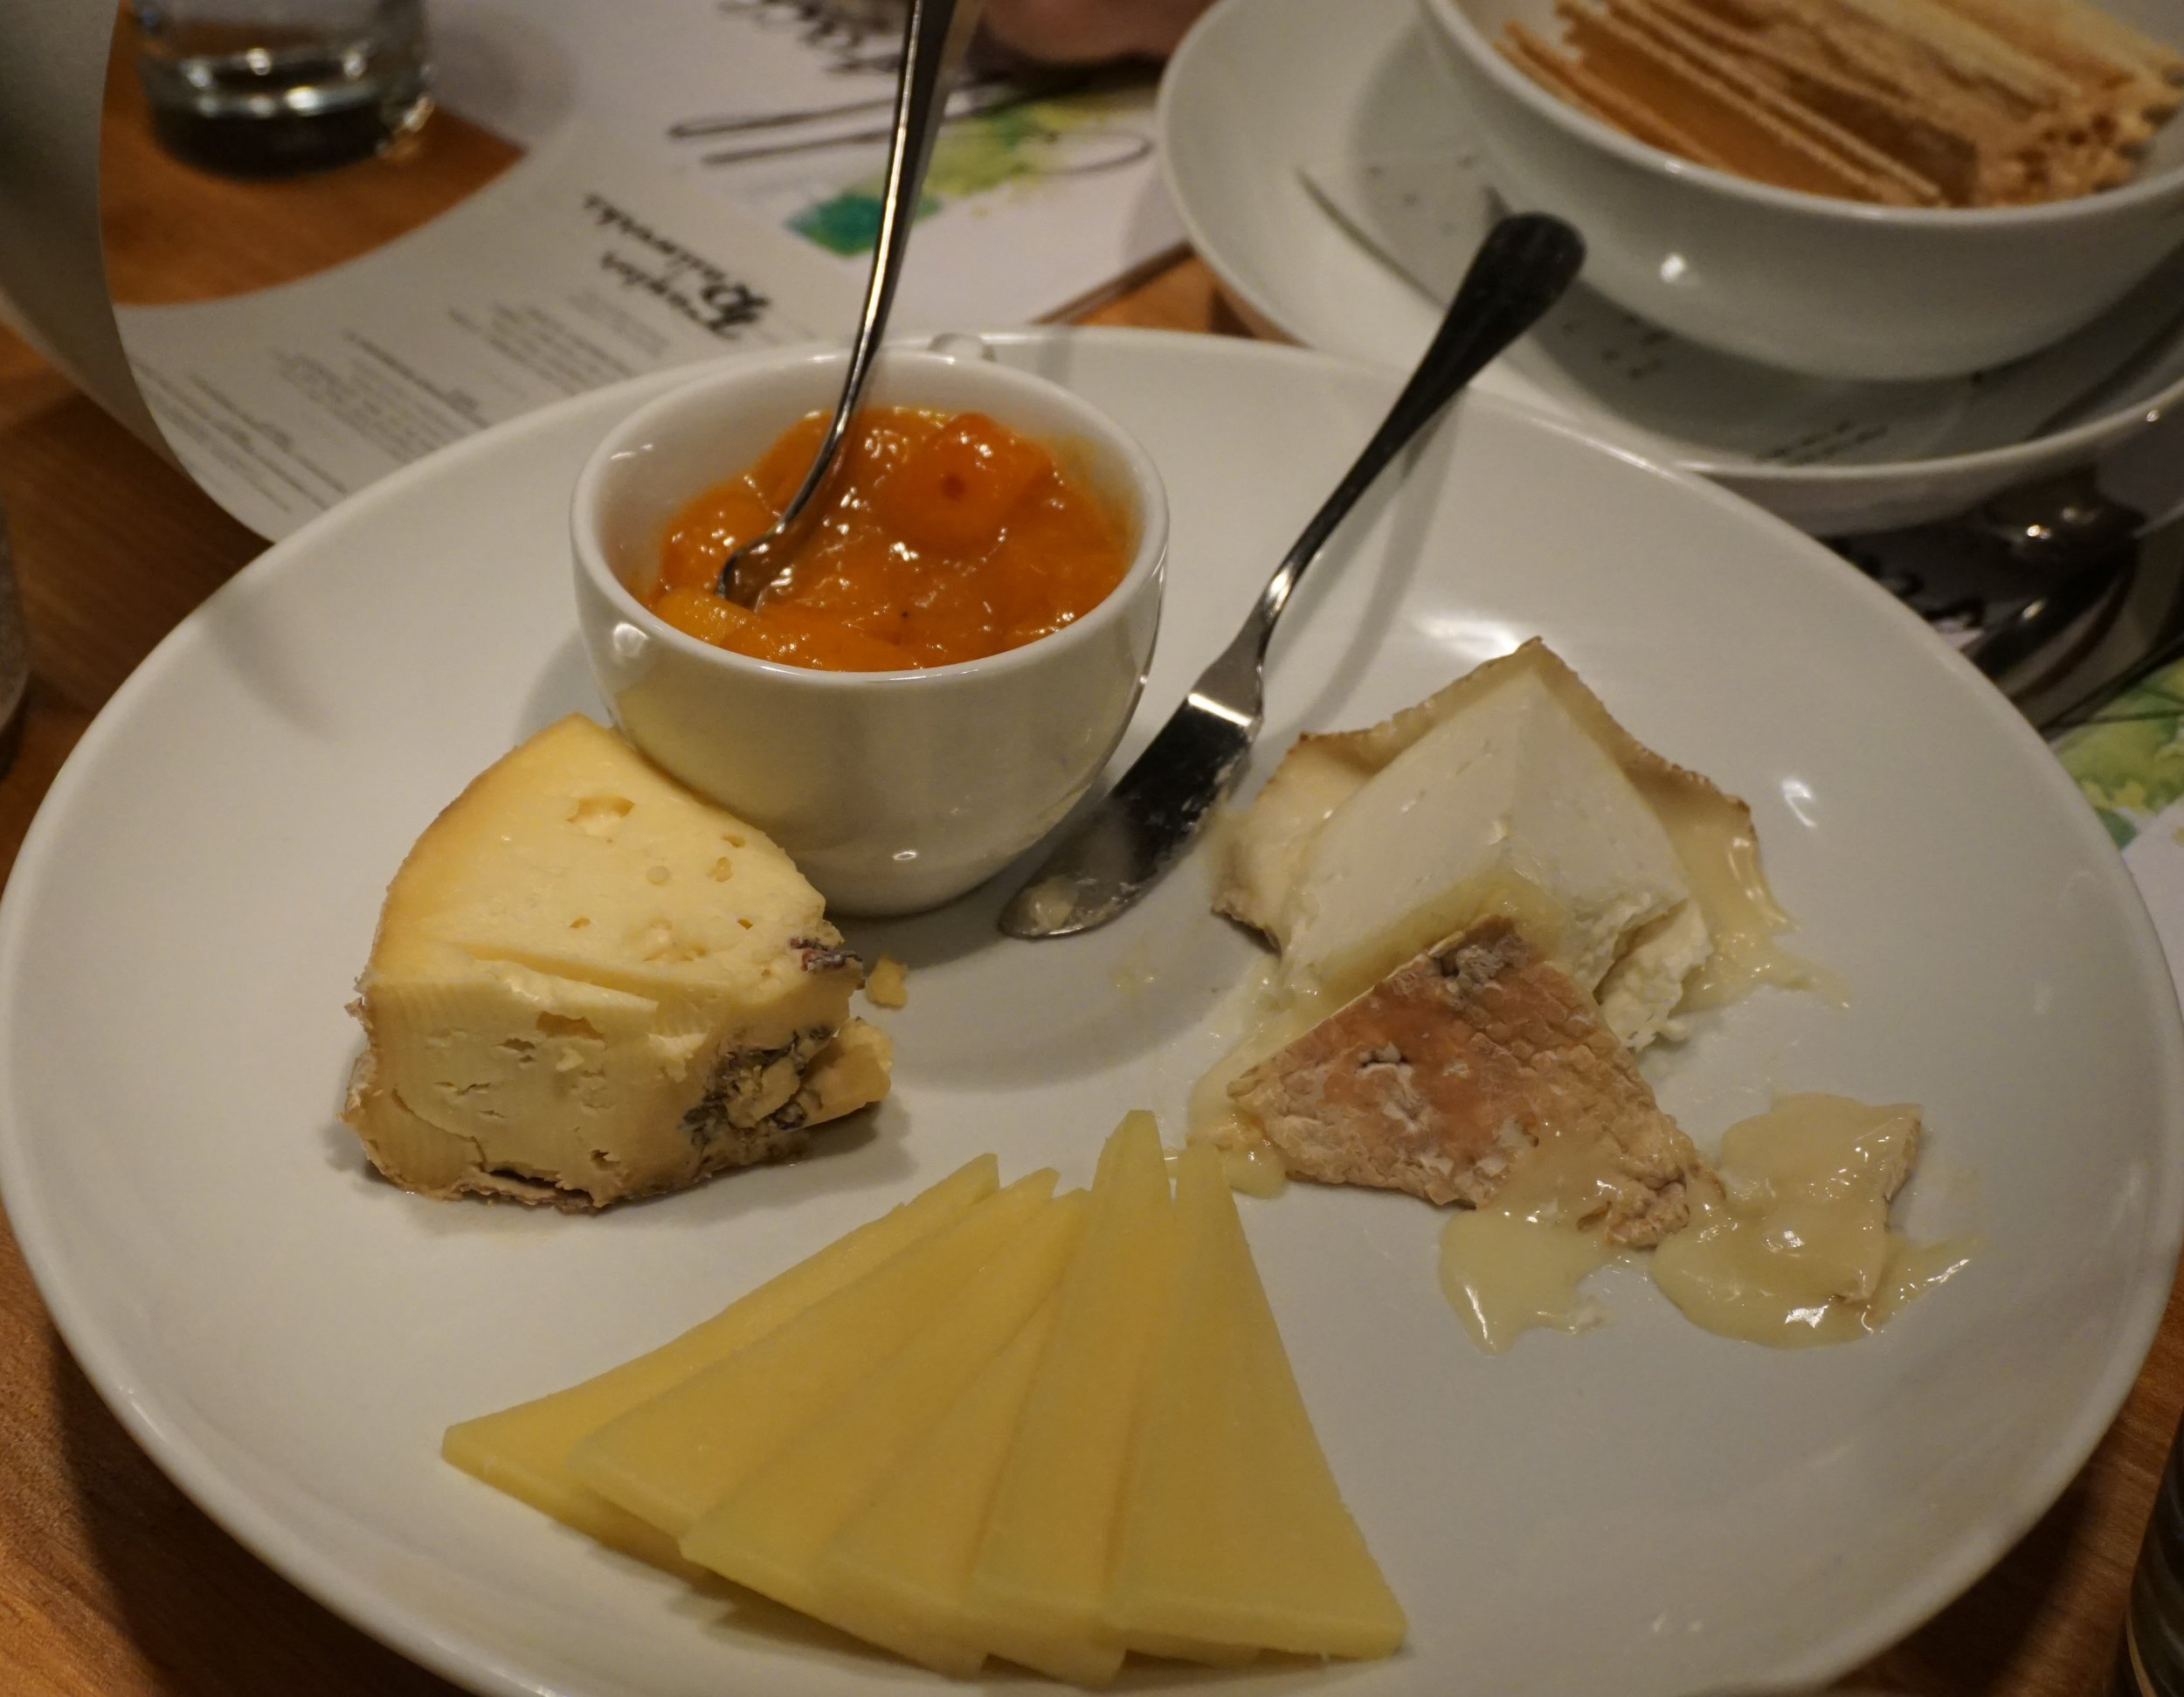 The typical European cheese plate was a trifecta opportunity to showcase the versatility of Alsatian wines. Viki Eierdam